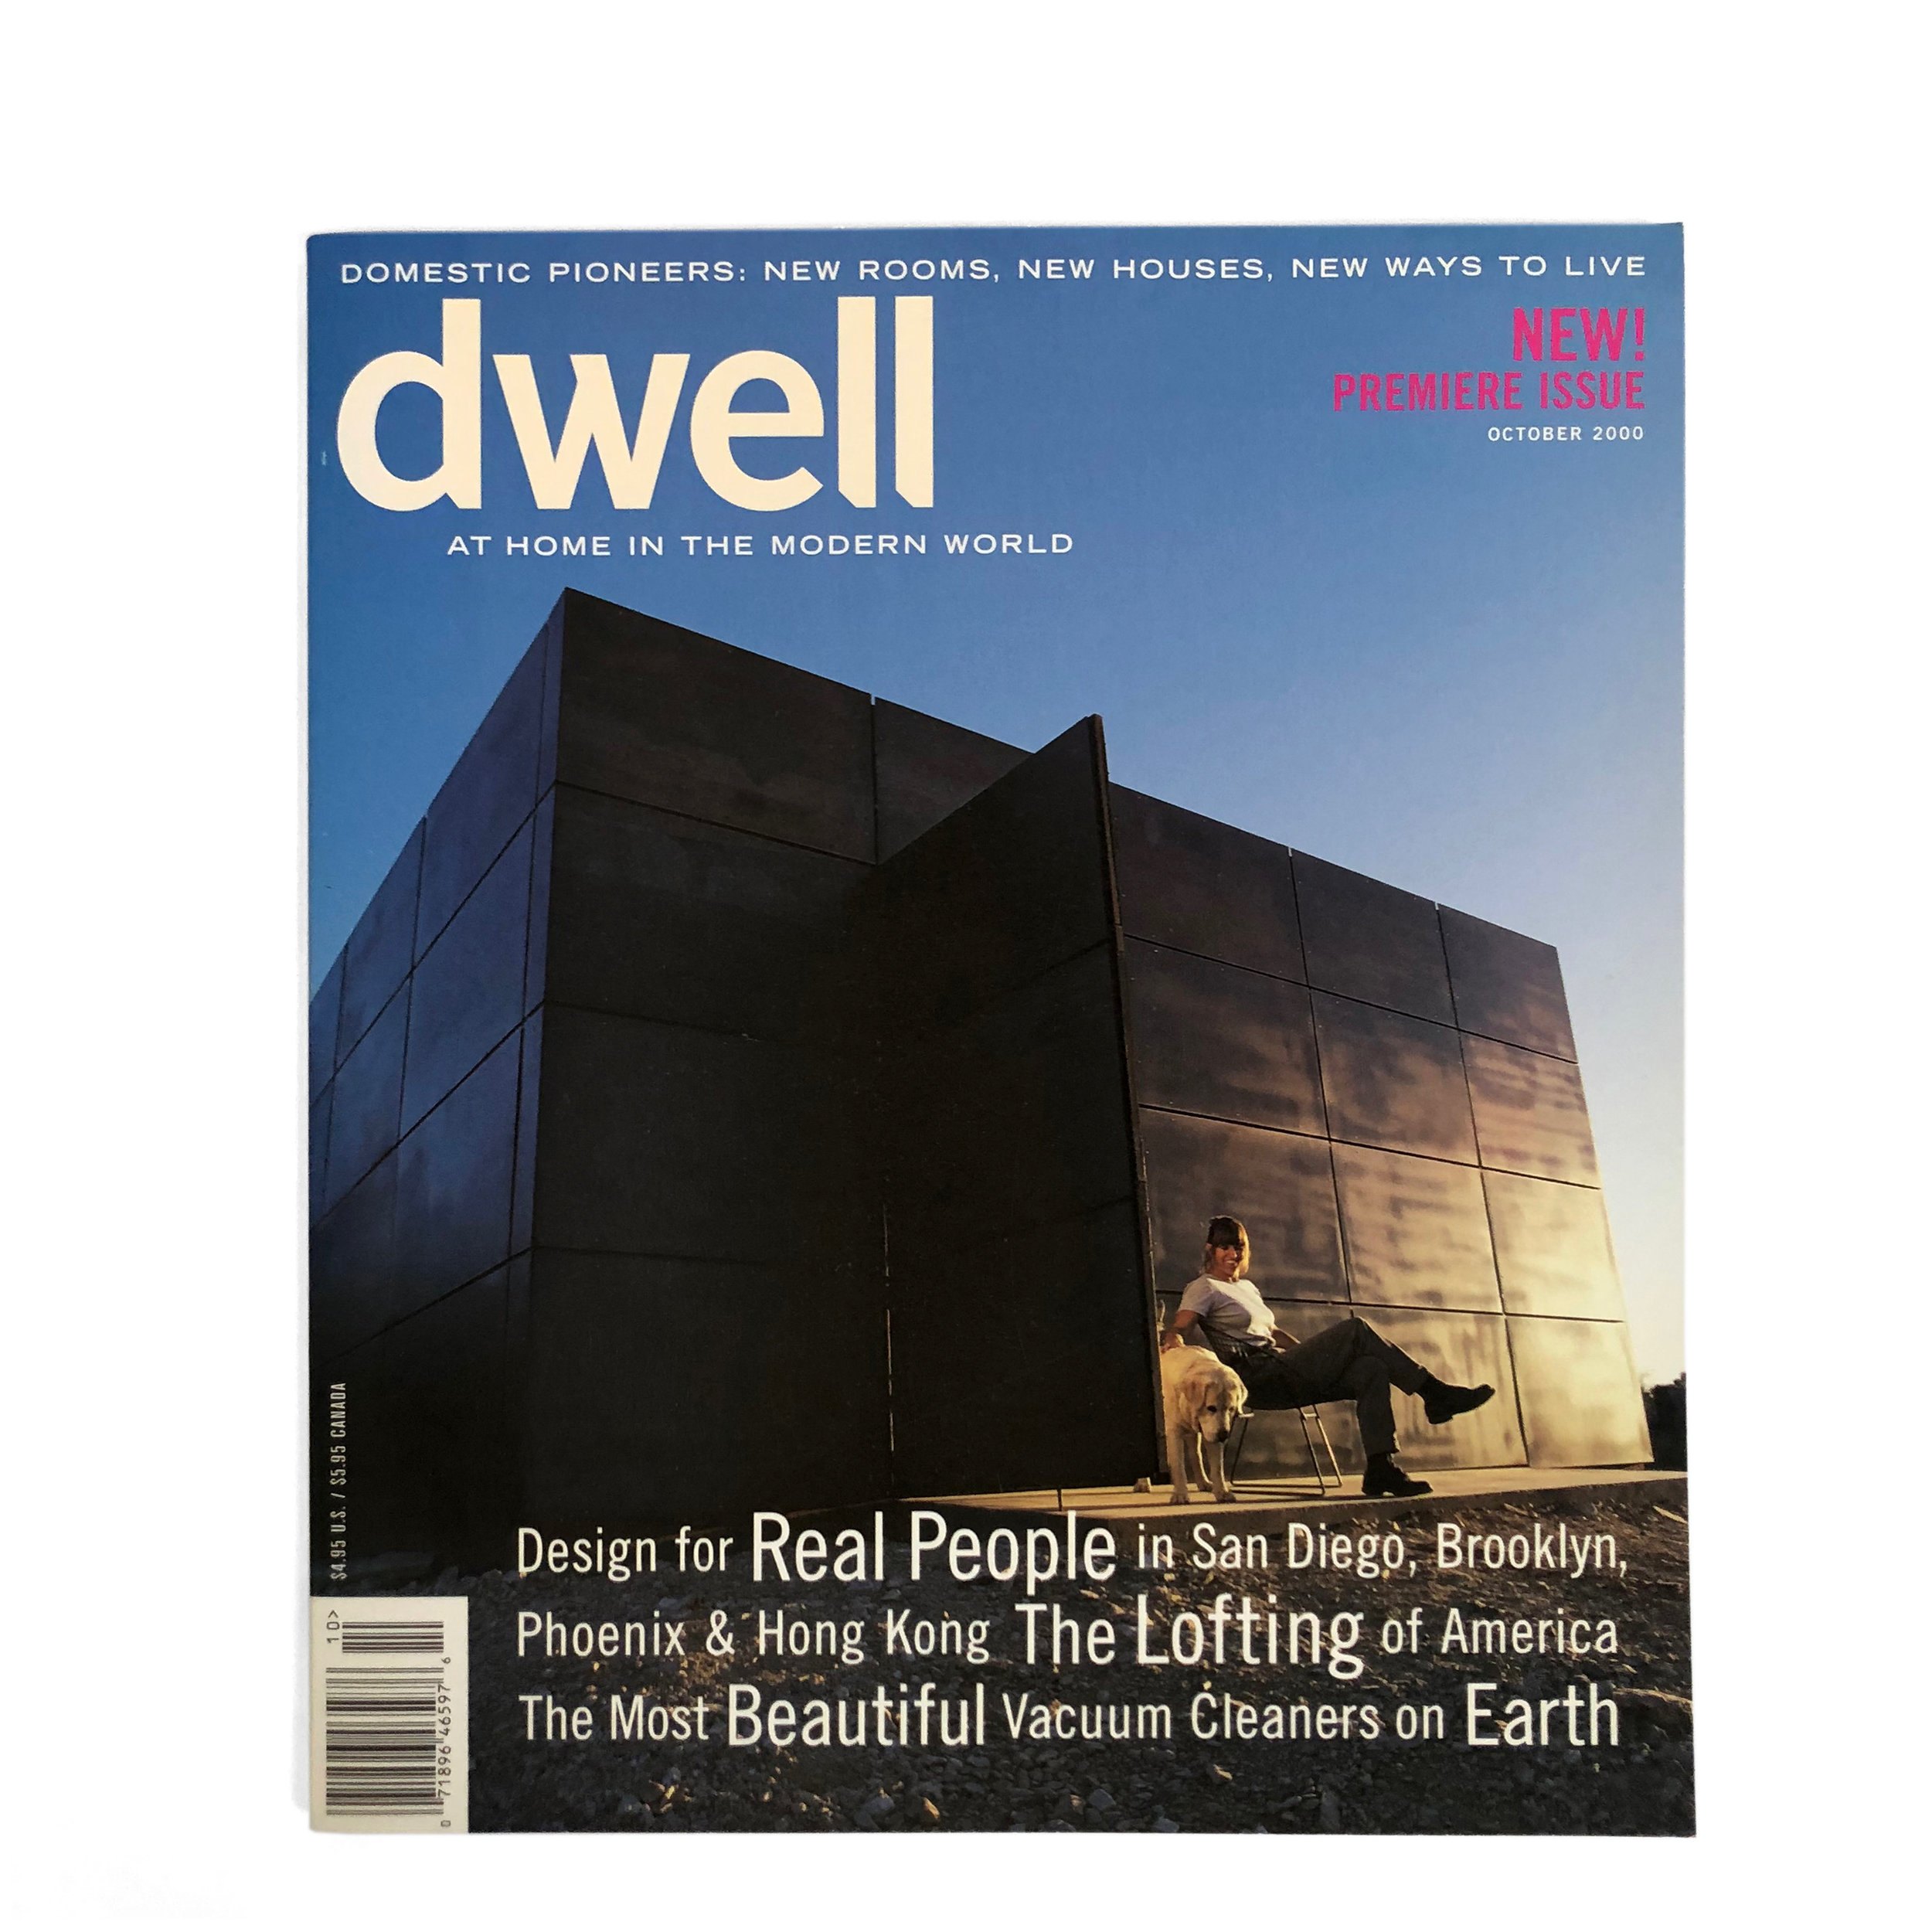 First issue of Dwell, 2000. Creative direction by Jeanette Hodge Abbink.